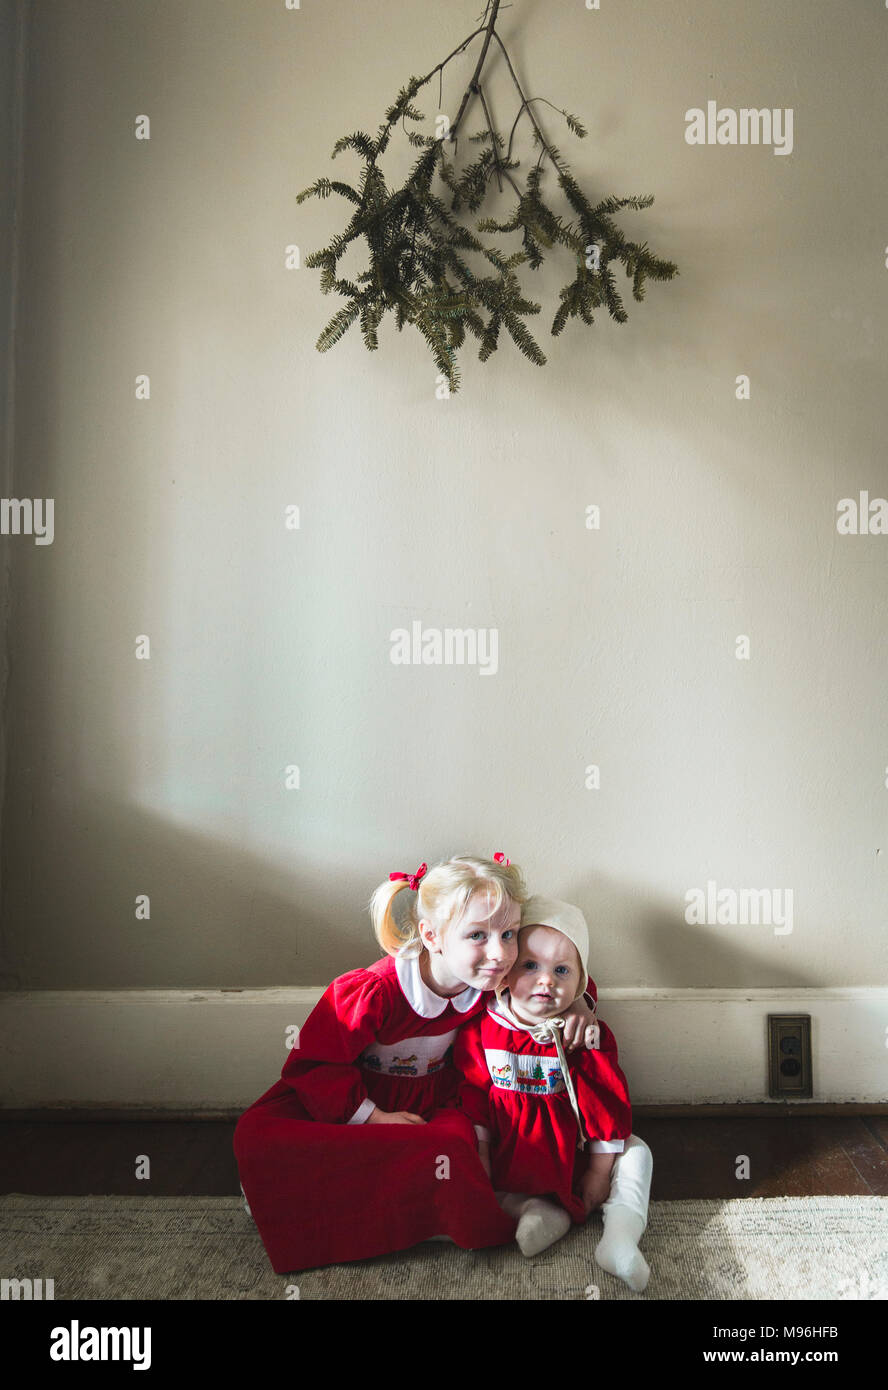 Girl and baby sitting on the floor beneath greenery - Stock Image